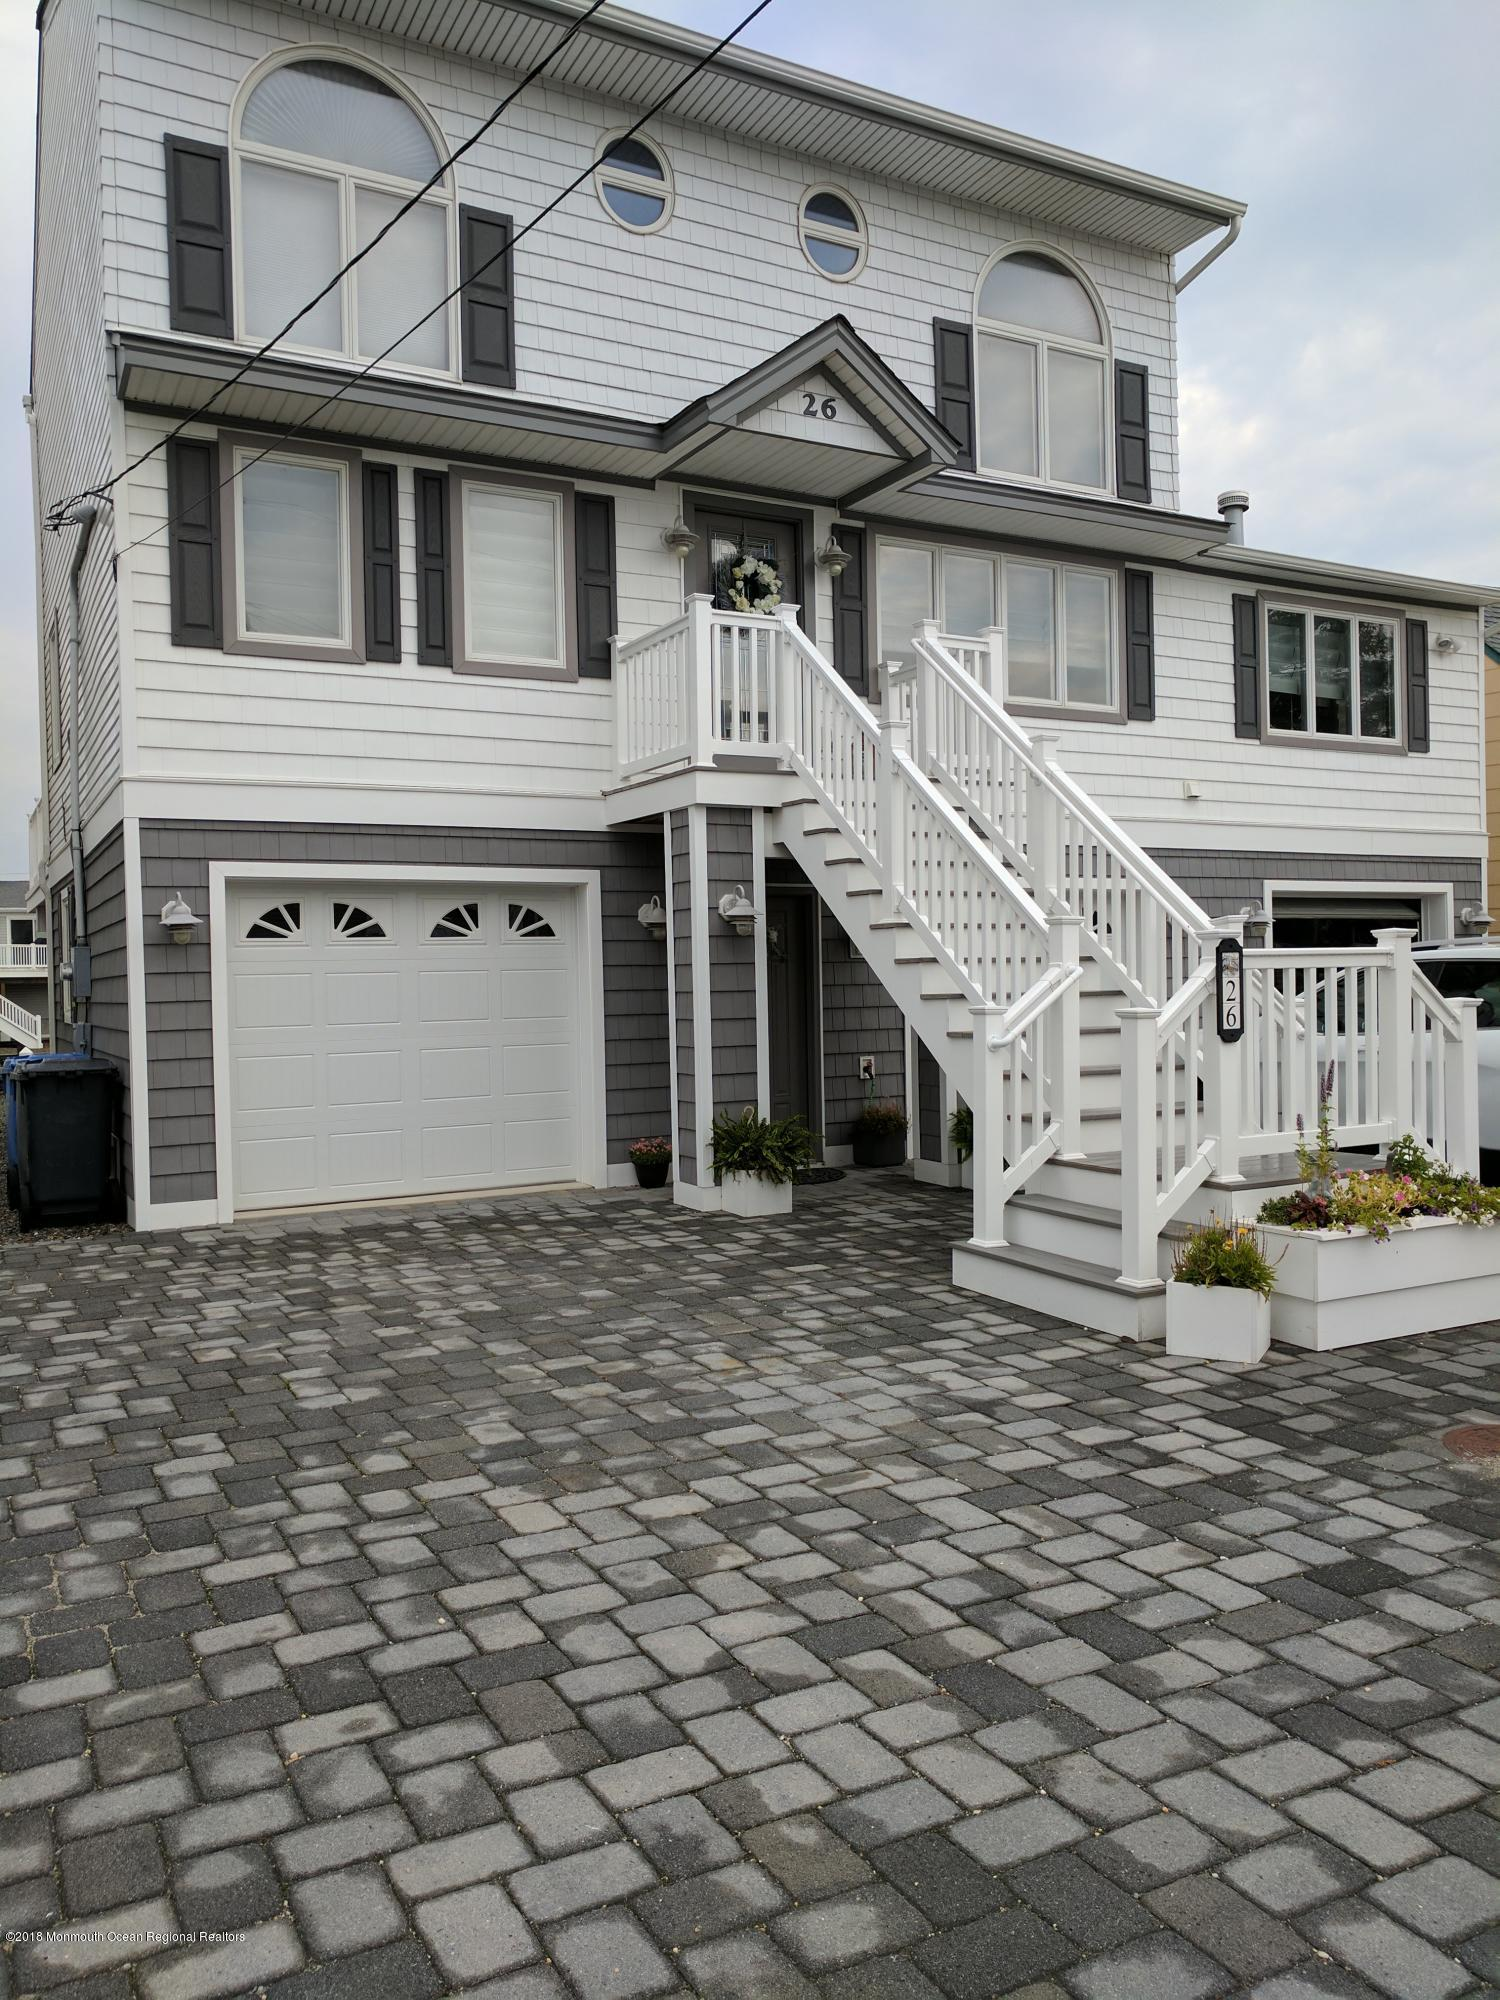 26 FRANK DRIVE, BEACH HAVEN WEST, NJ 08050